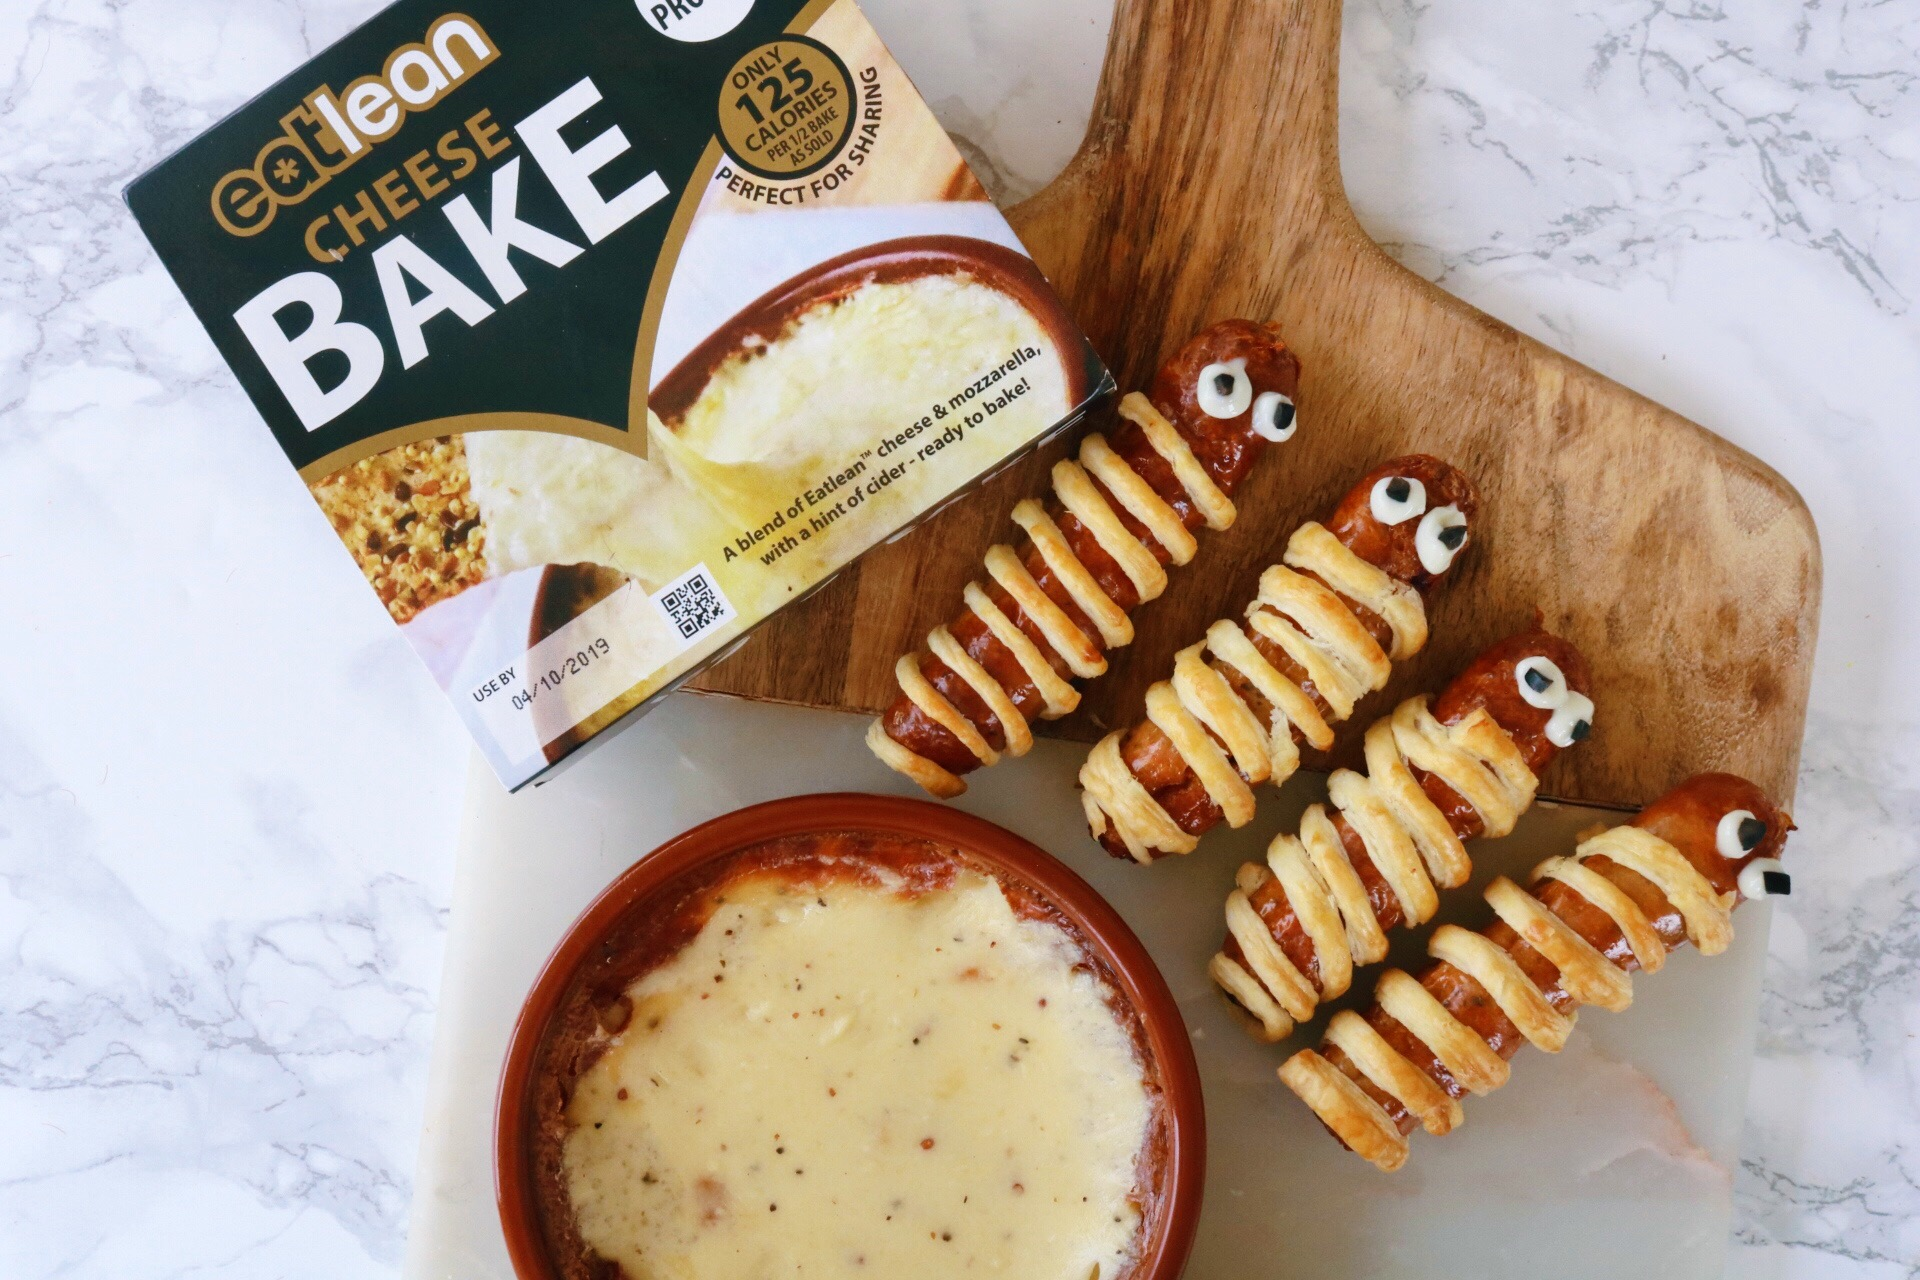 Low fat, low calorie, high protein cheese bake